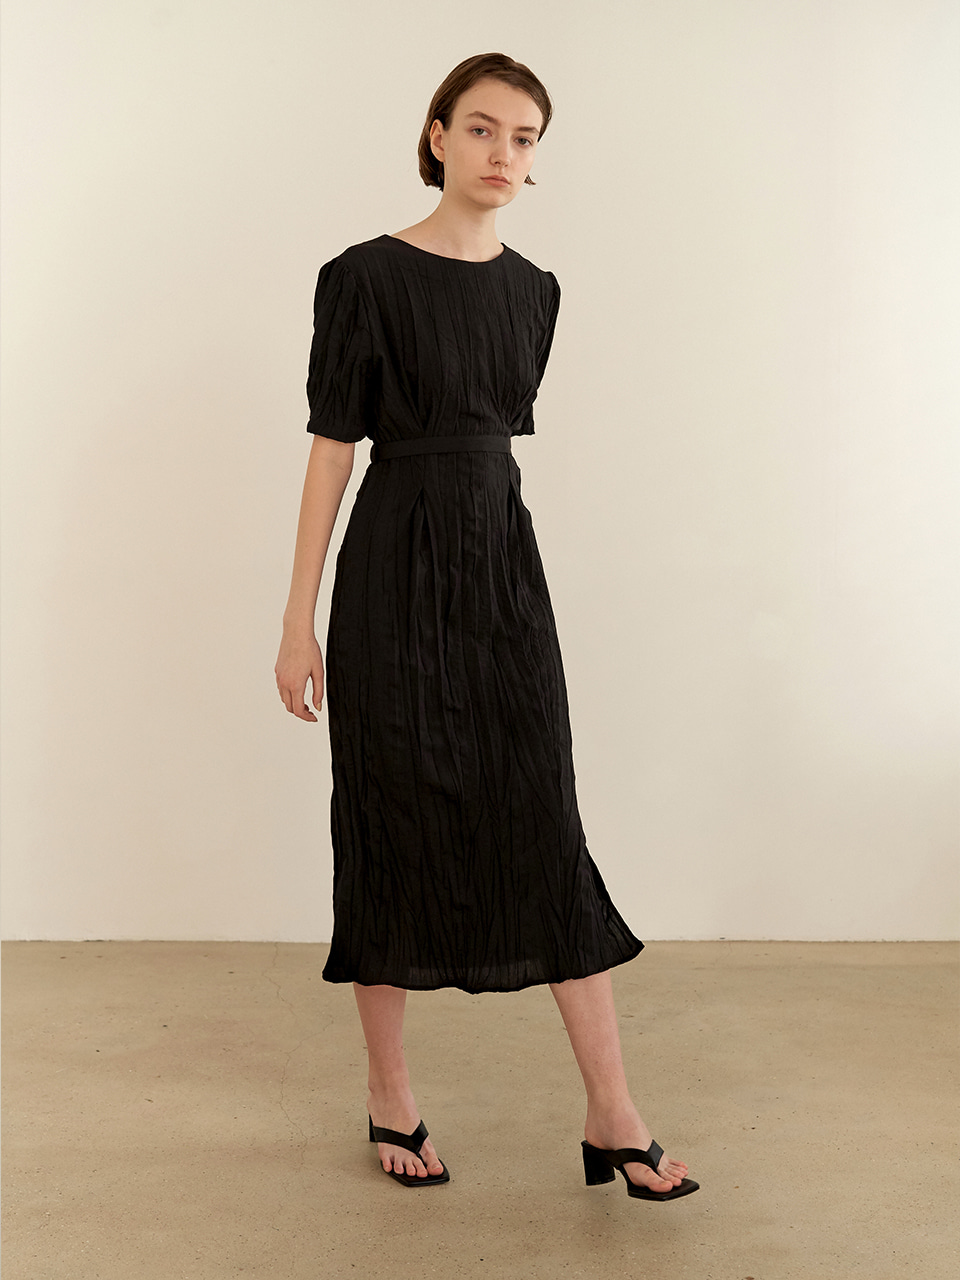 [7/7순차배송] Wrinkle reversible dress - black